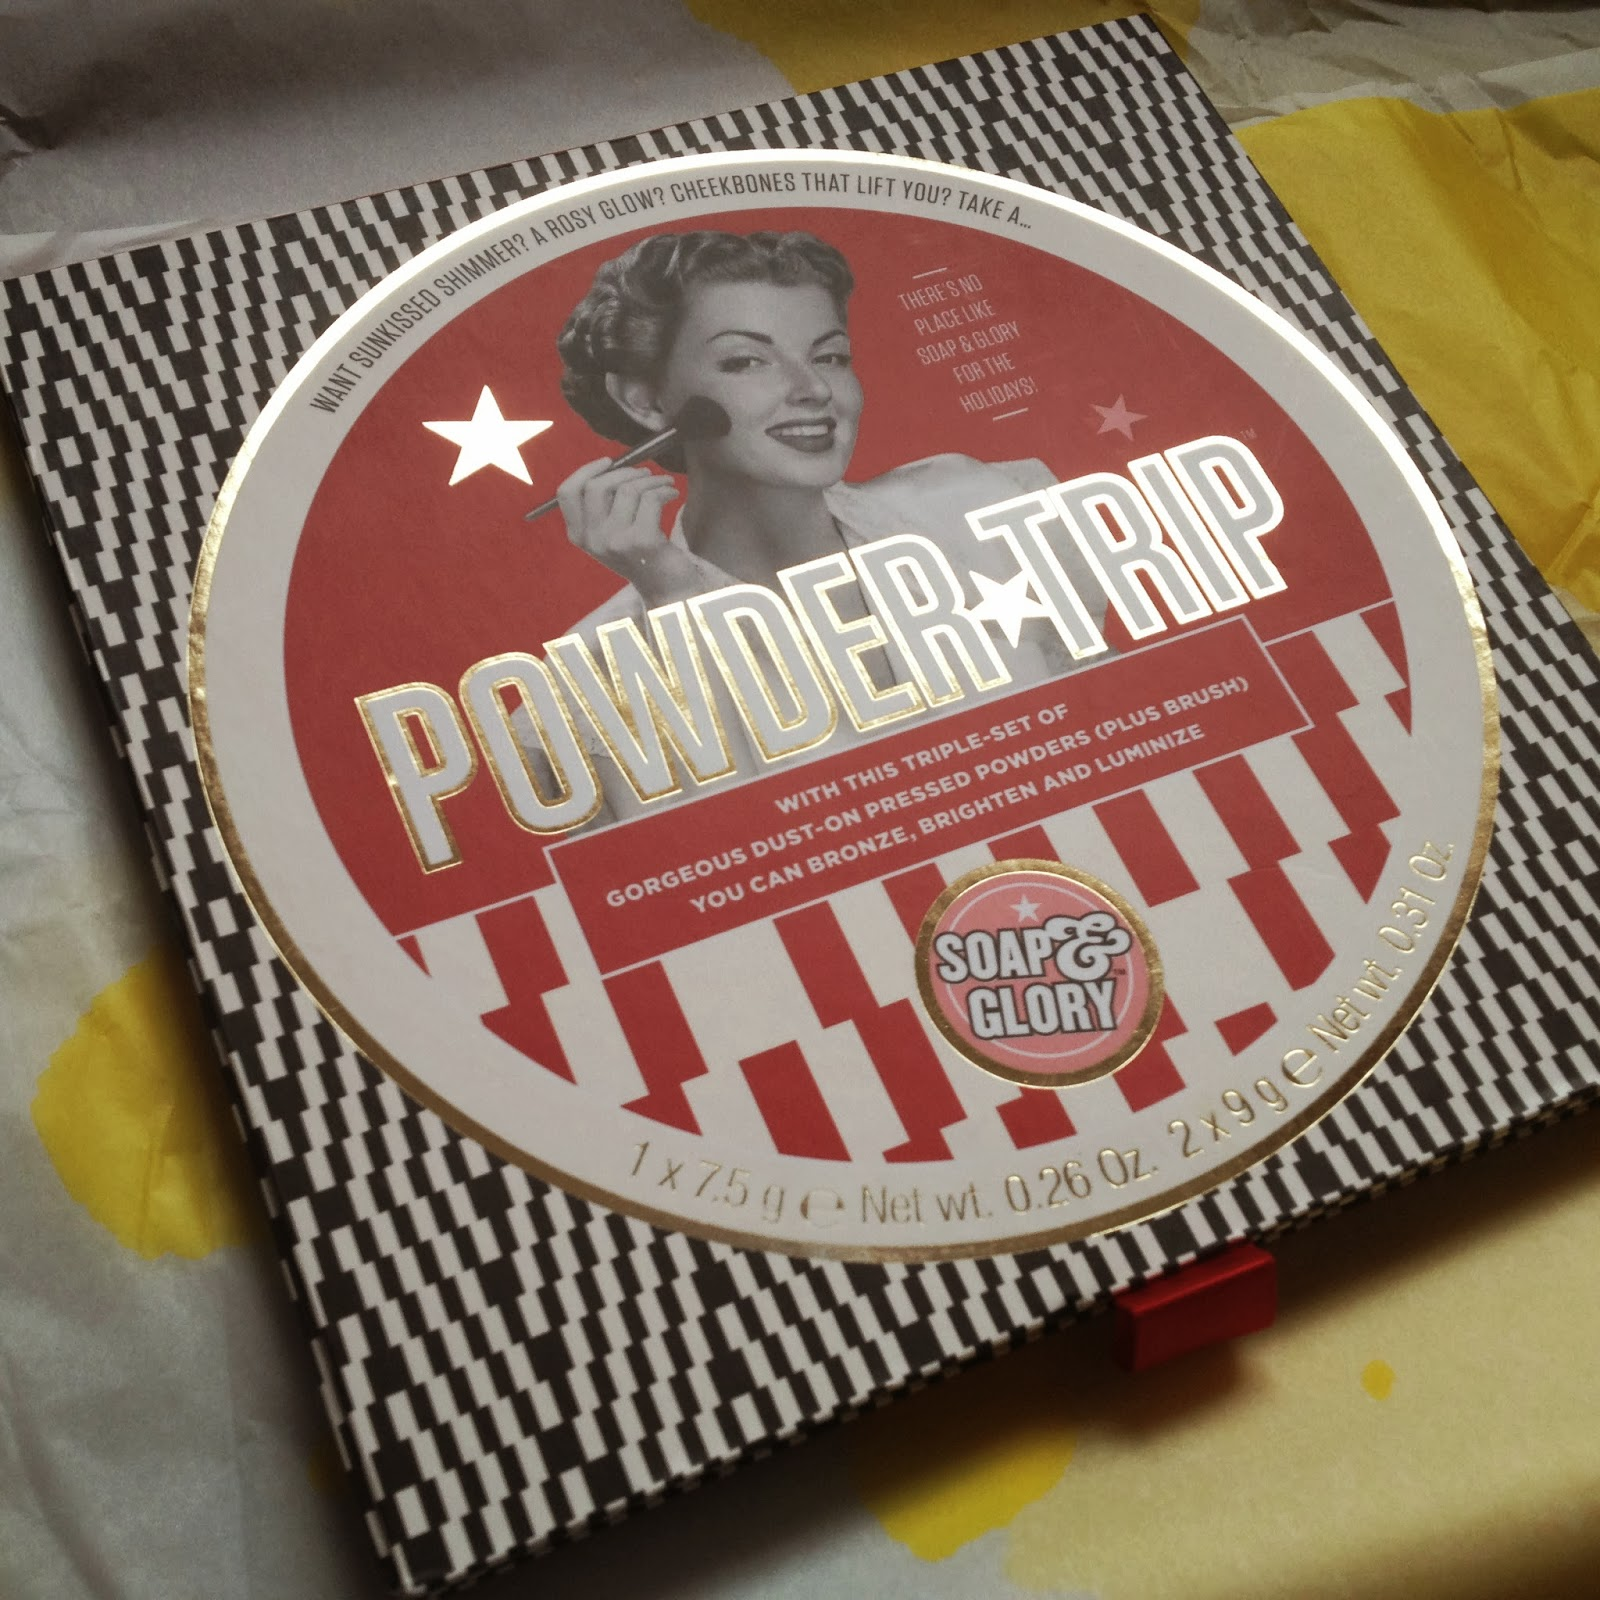 Soap and Glory Powder Trip